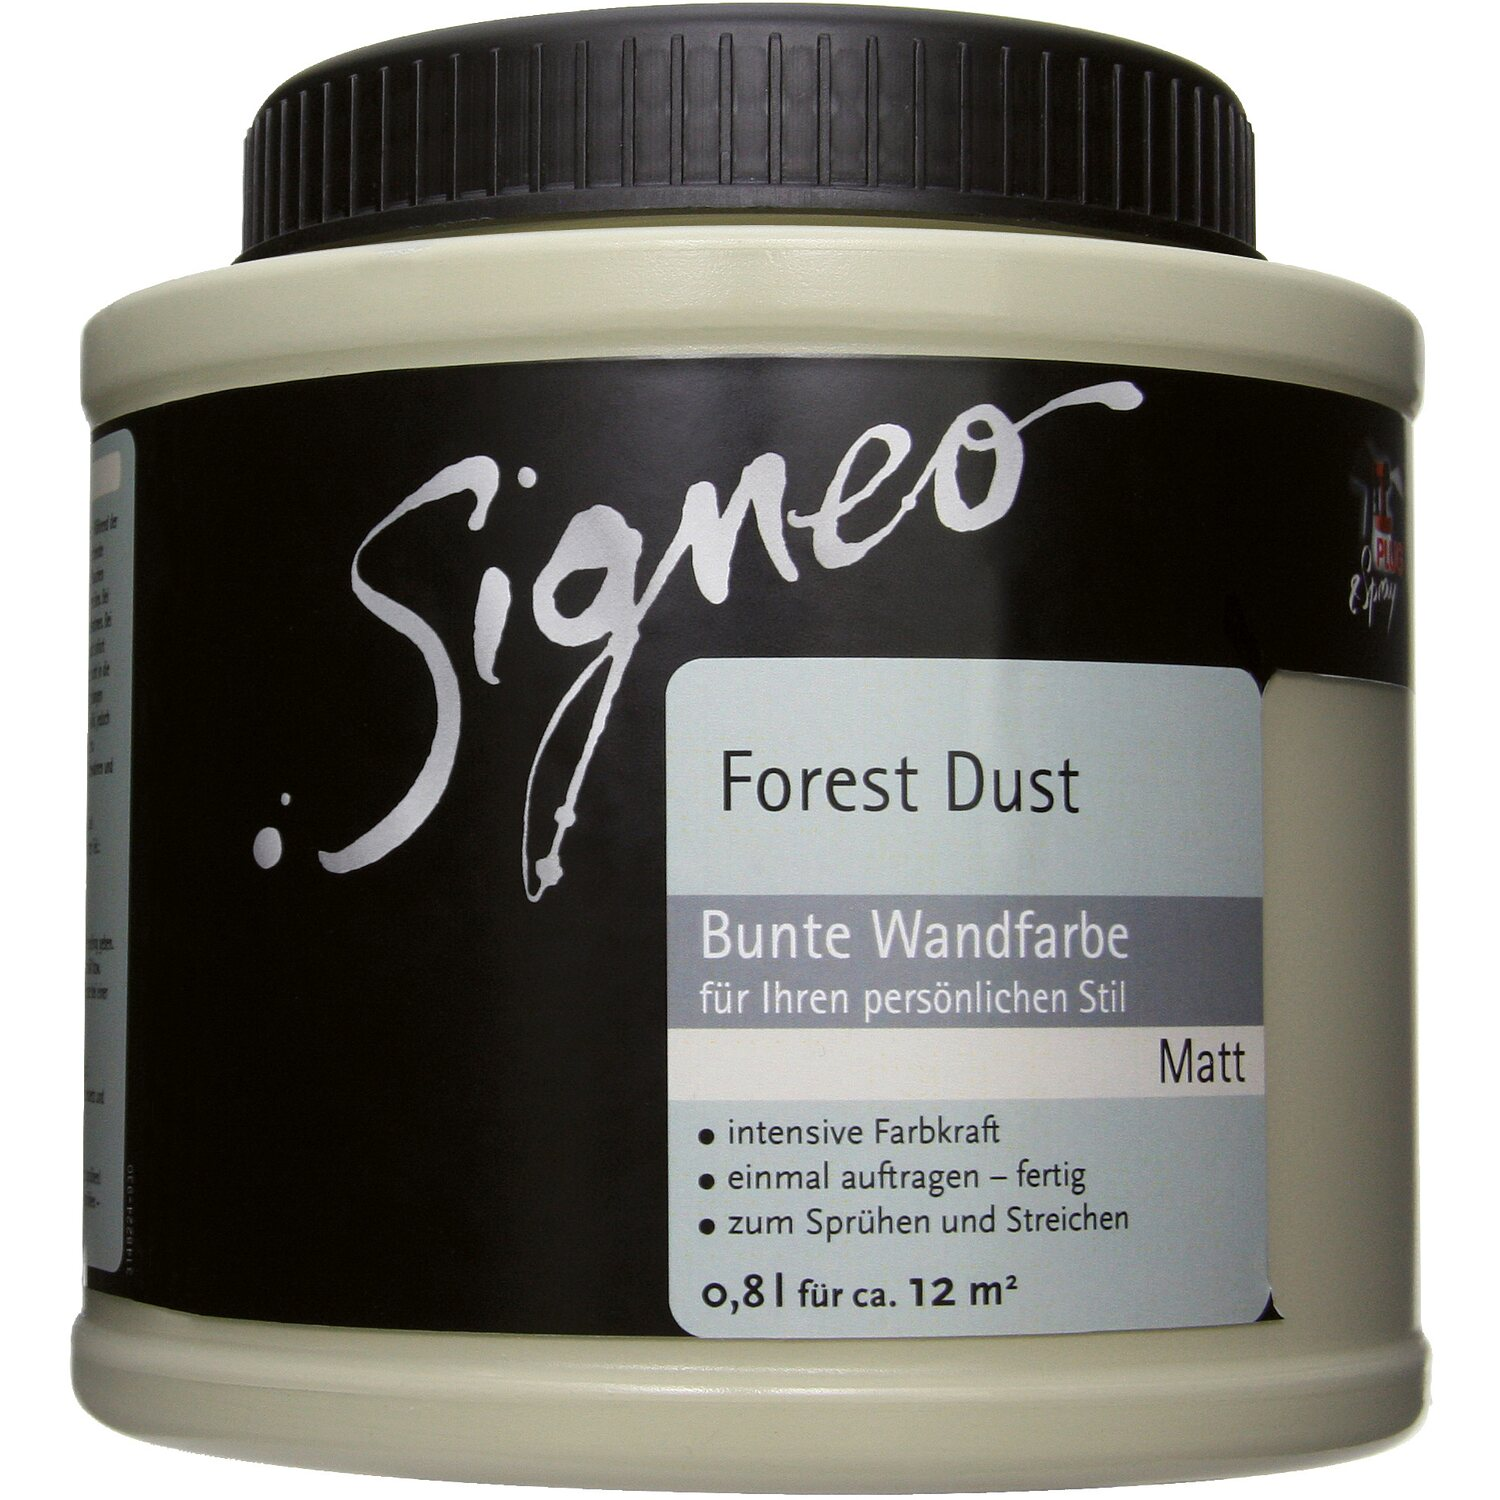 signeo bunte wandfarbe matt forest dust 800 ml kaufen bei obi. Black Bedroom Furniture Sets. Home Design Ideas